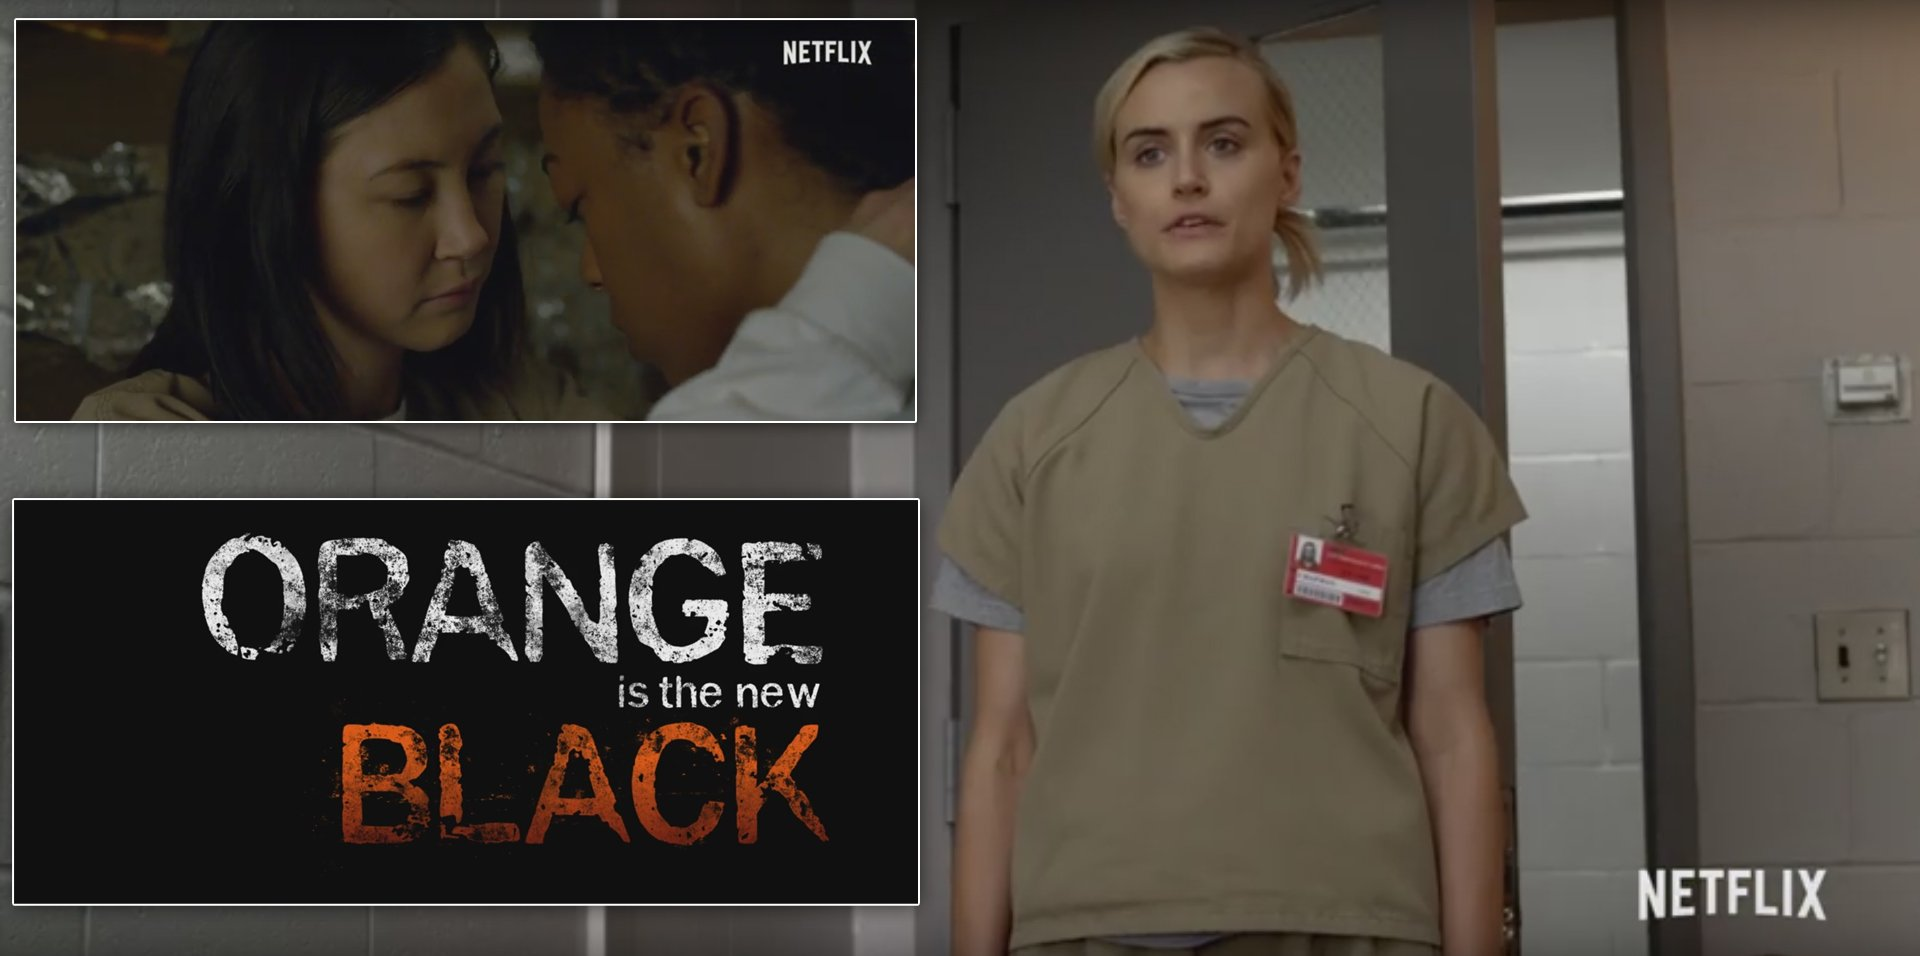 Découvrez la bande-annonce de la saison 4 d'Orange Is The New Black